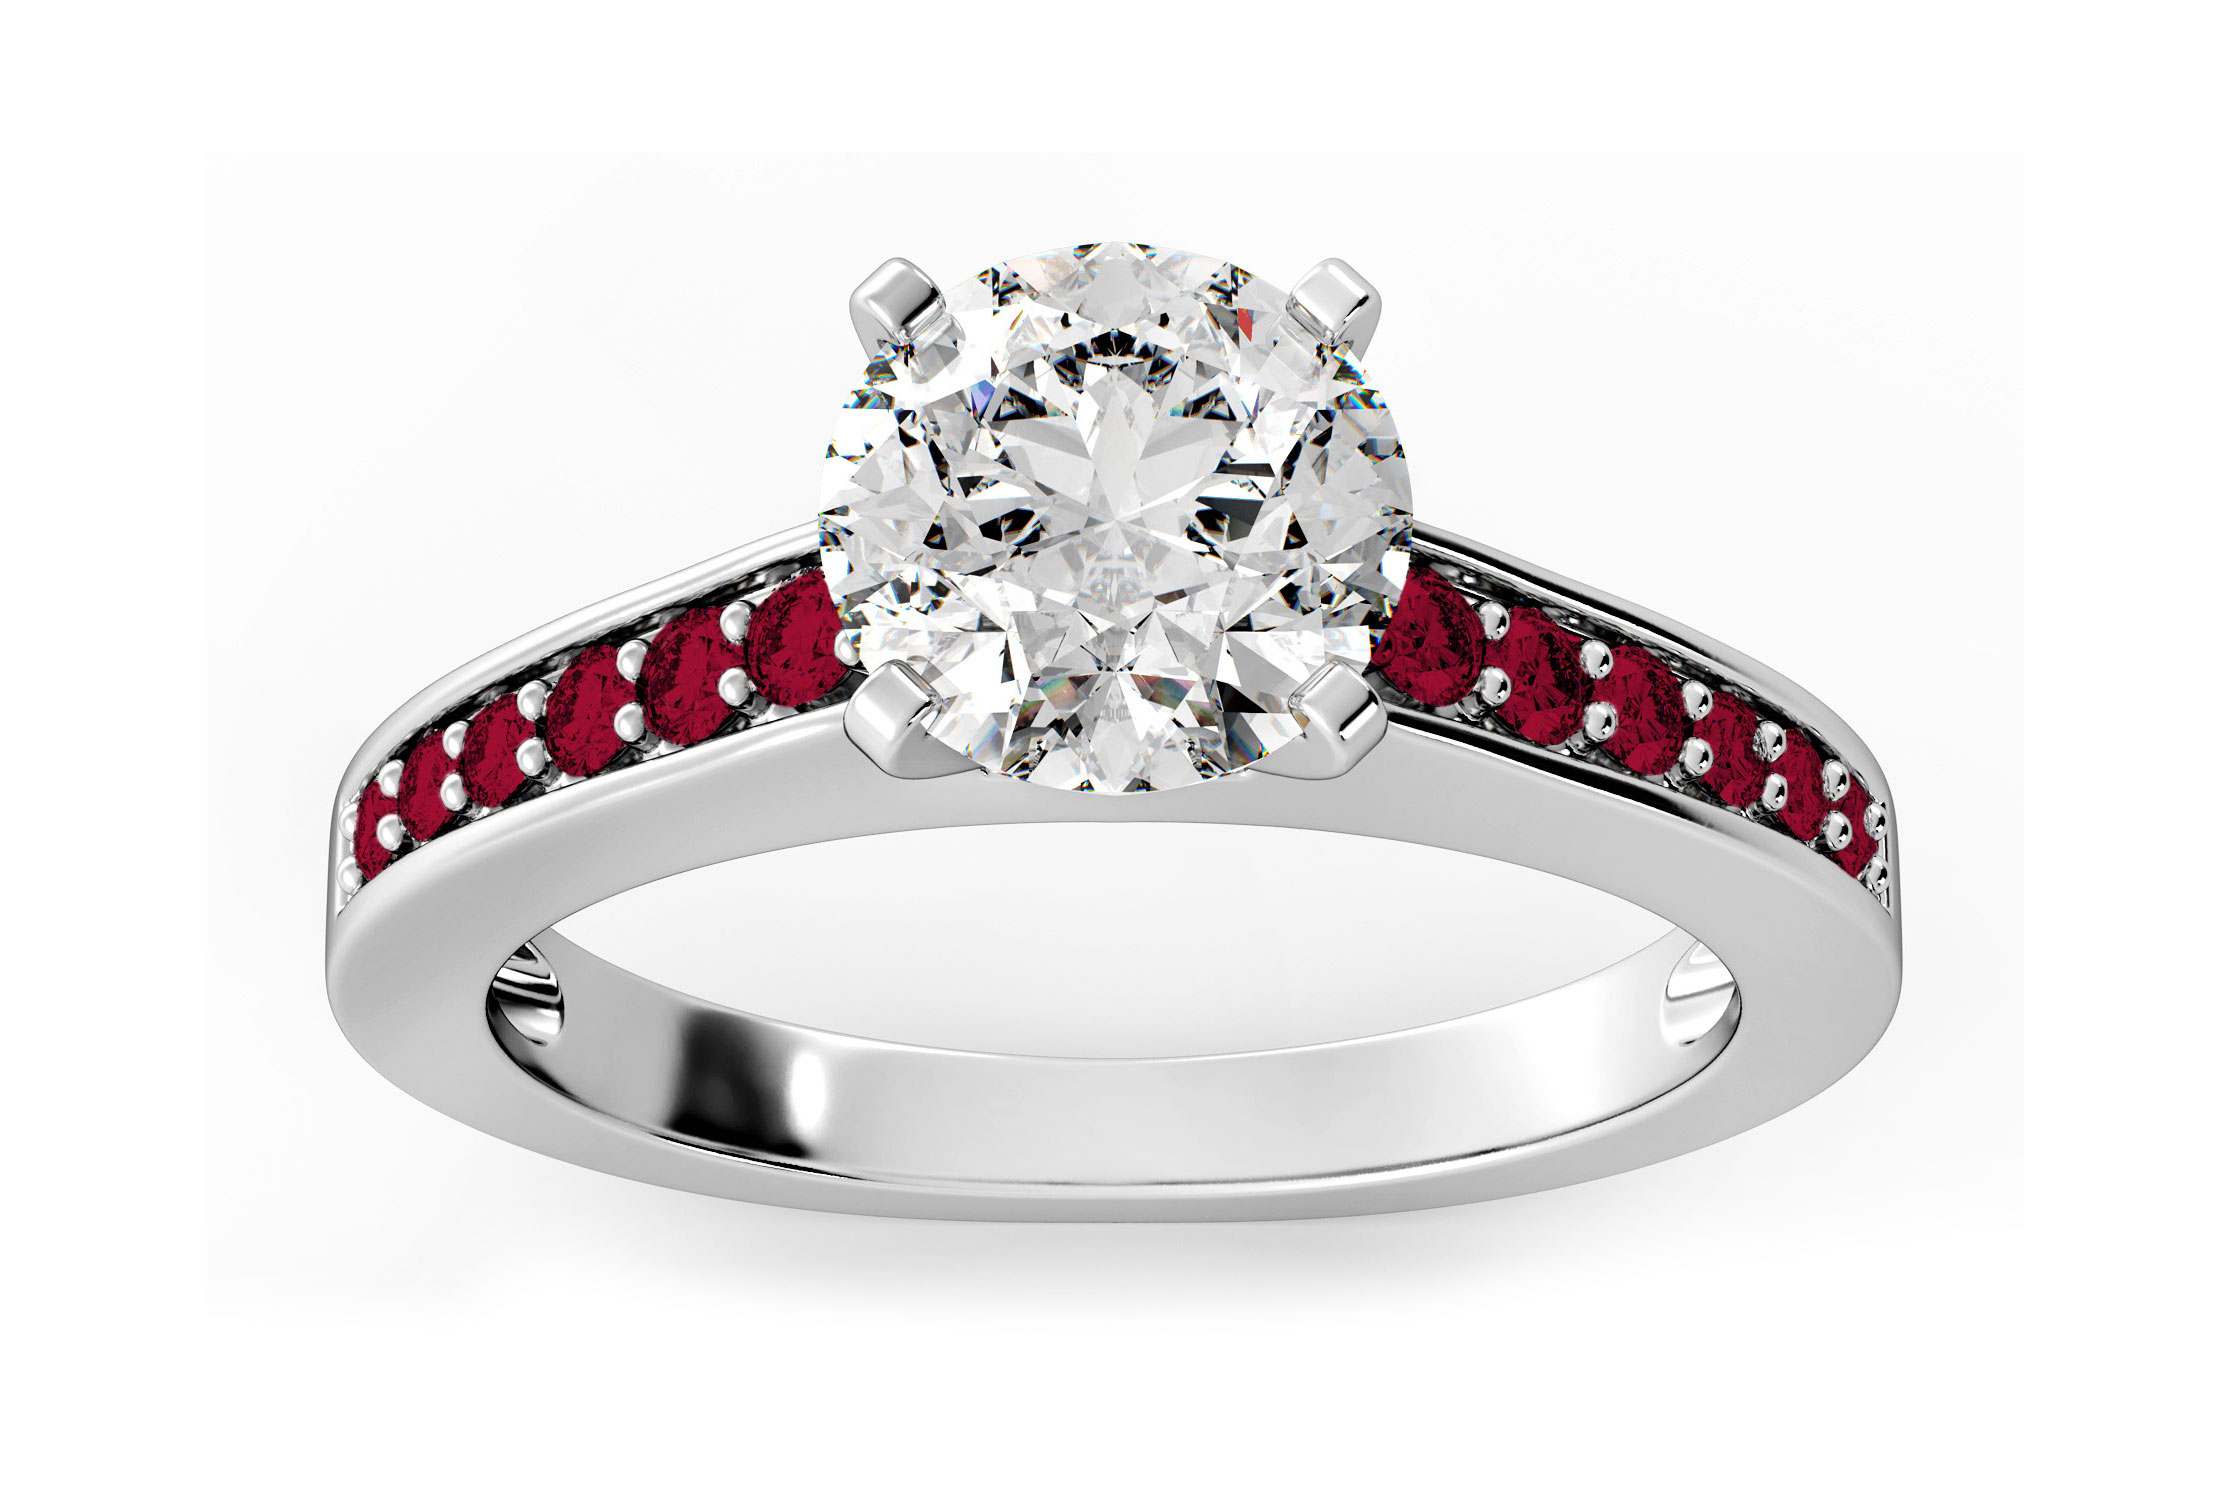 diamond-engagement-ring-with-rubies.jpg